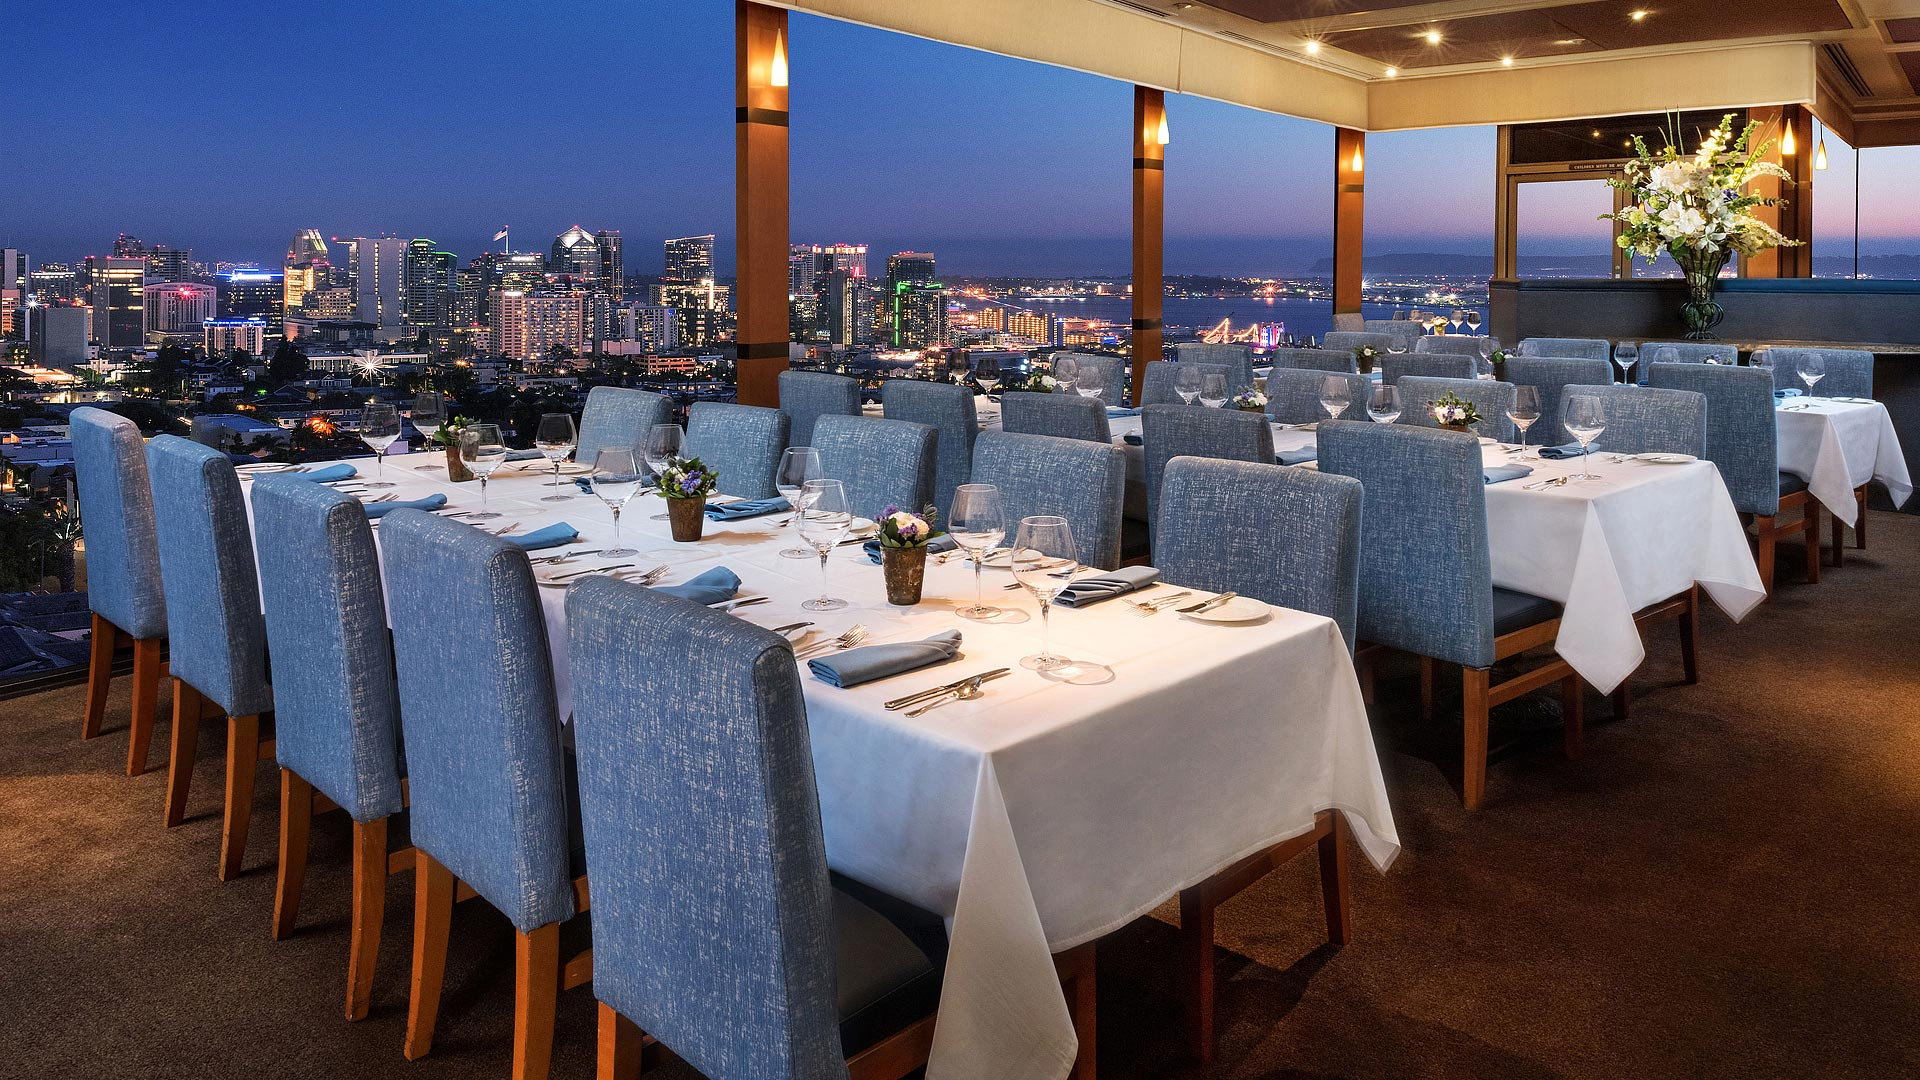 Group dining with view of San Diego at dusk